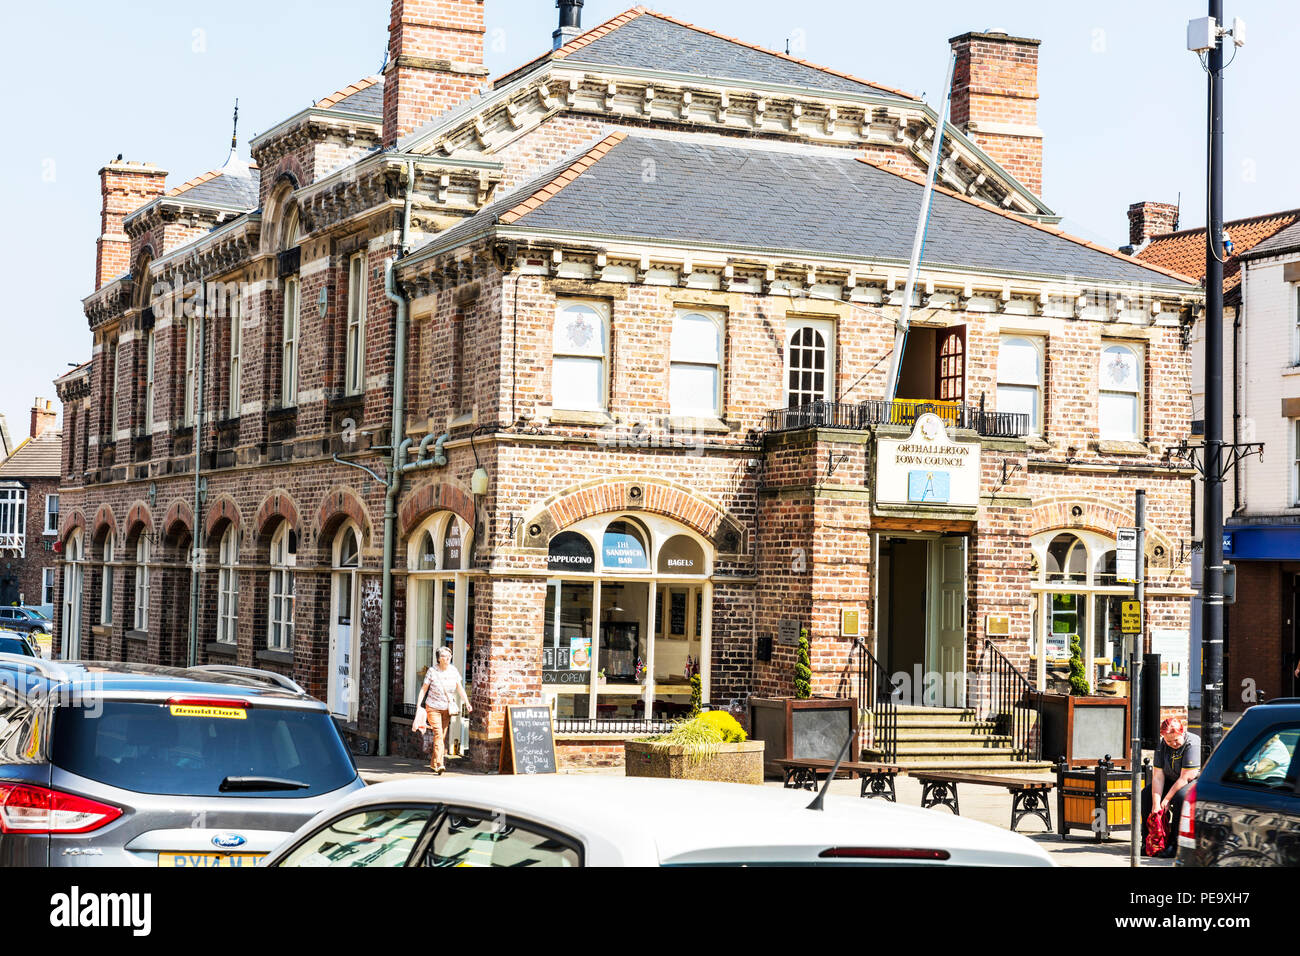 Northallerton Town Hall building, Northallerton Town Council, Town Hall Buildings, Town hall Northallerton Yorkshire UK, town hall, town halls, UK - Stock Image